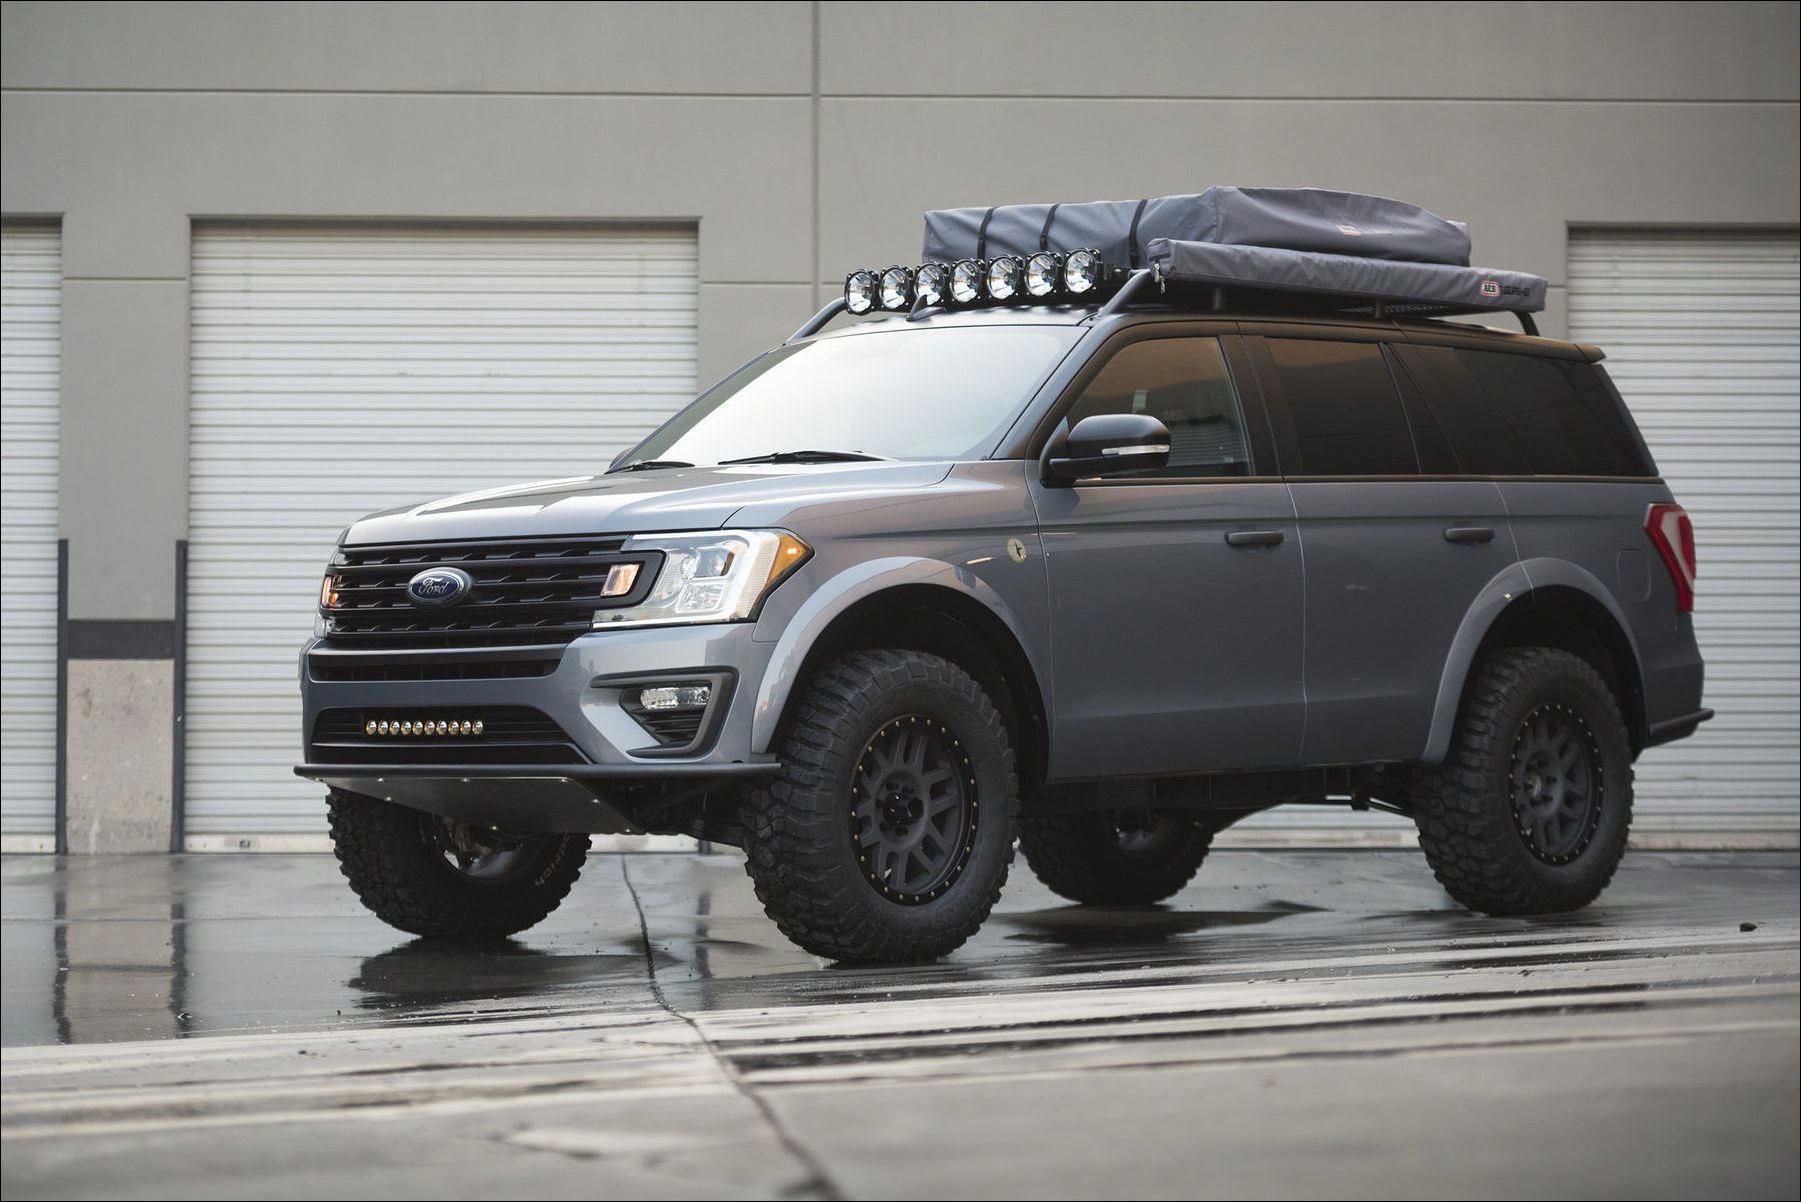 Pin by Traversemotors on Auto in 2020 Ford expedition